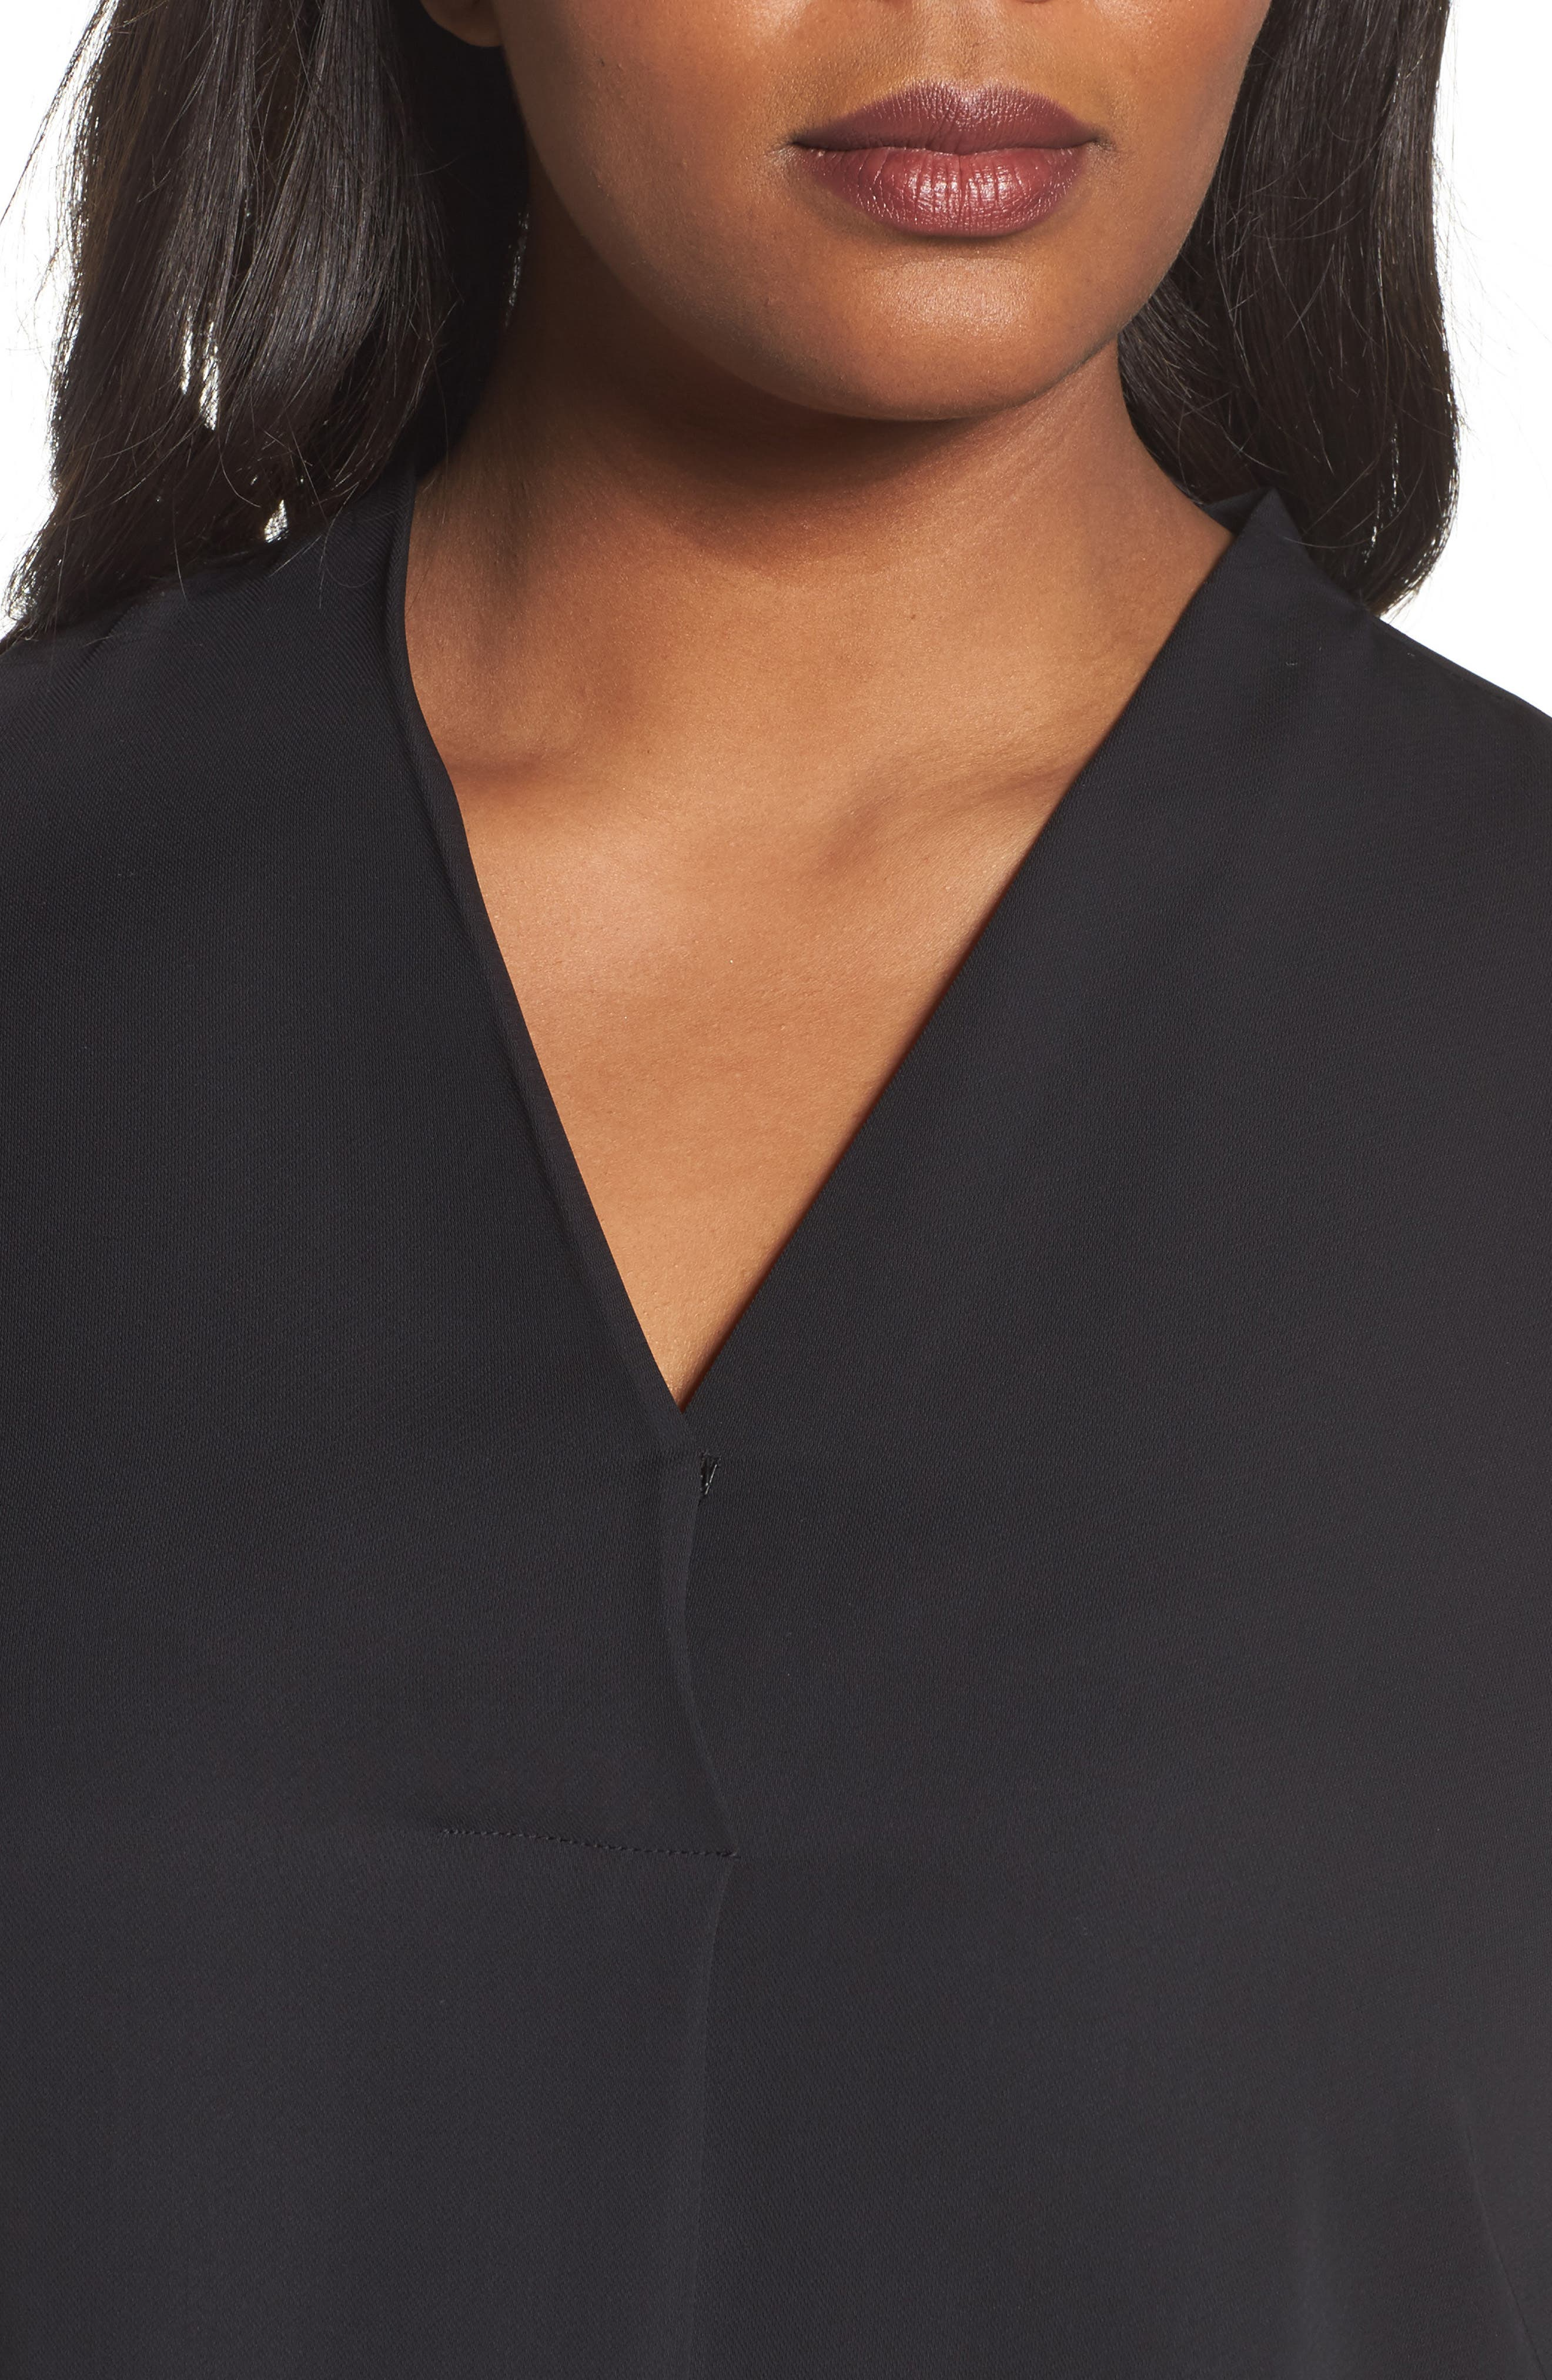 Majestic Matte Satin Blouse,                             Alternate thumbnail 4, color,                             004